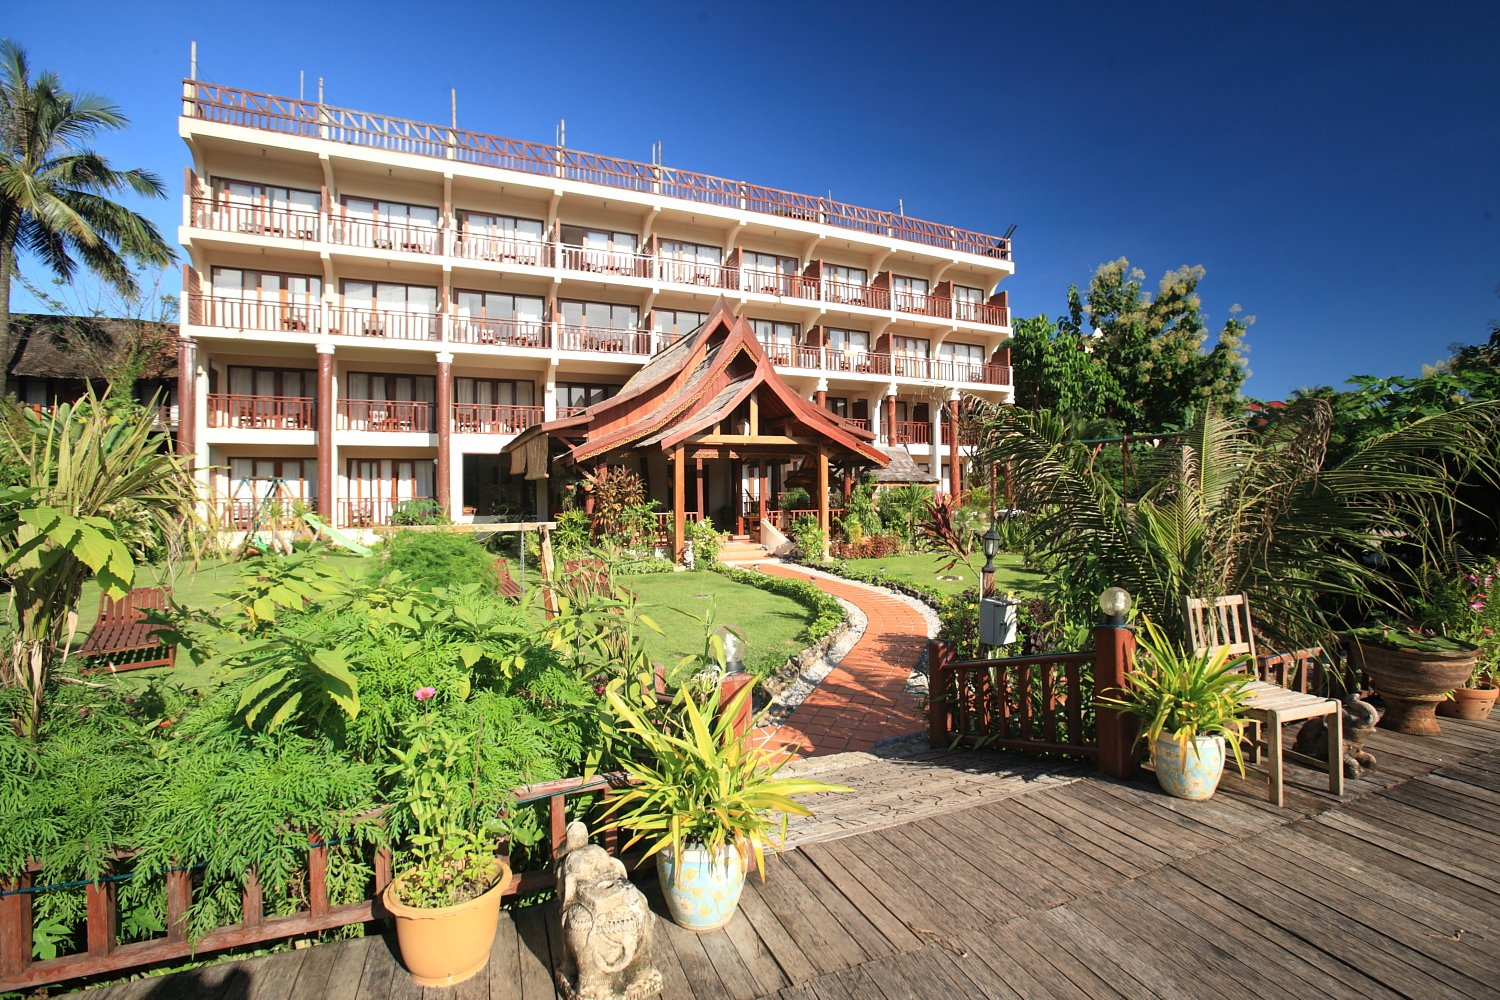 The Elephant Crossing Hotel